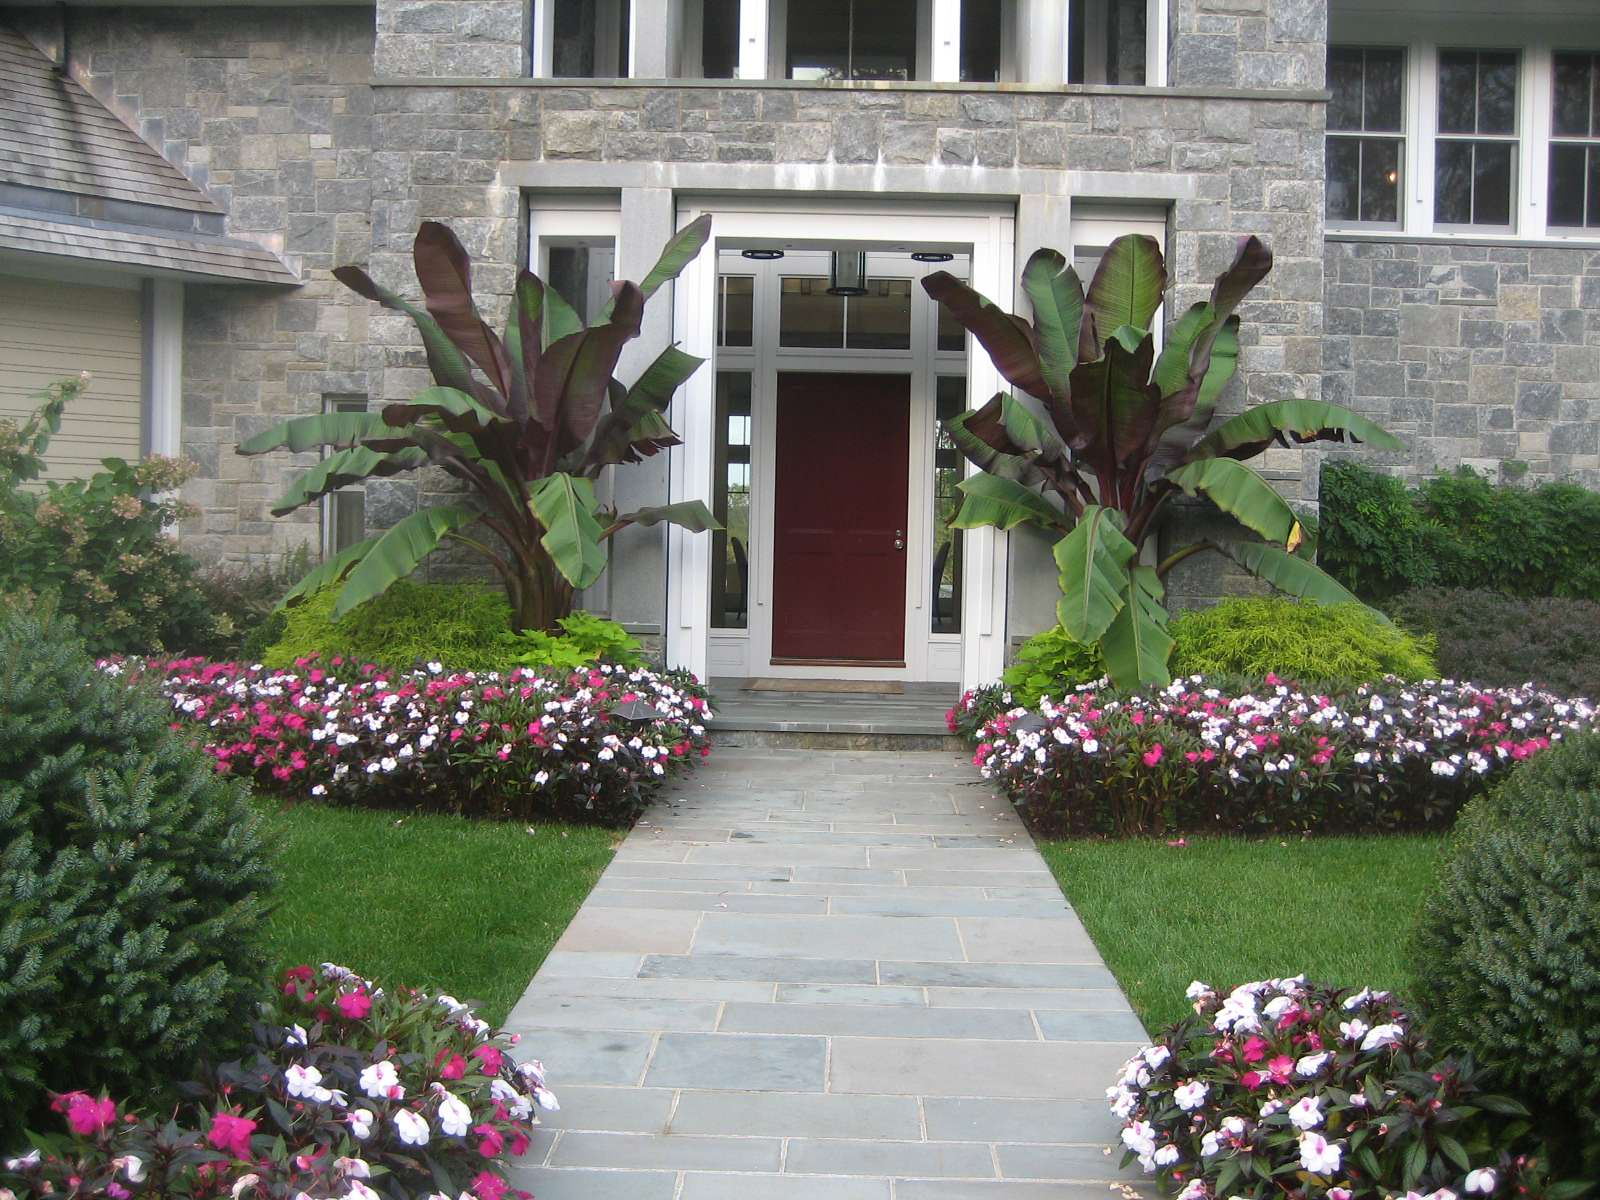 Grand Entrances to the House